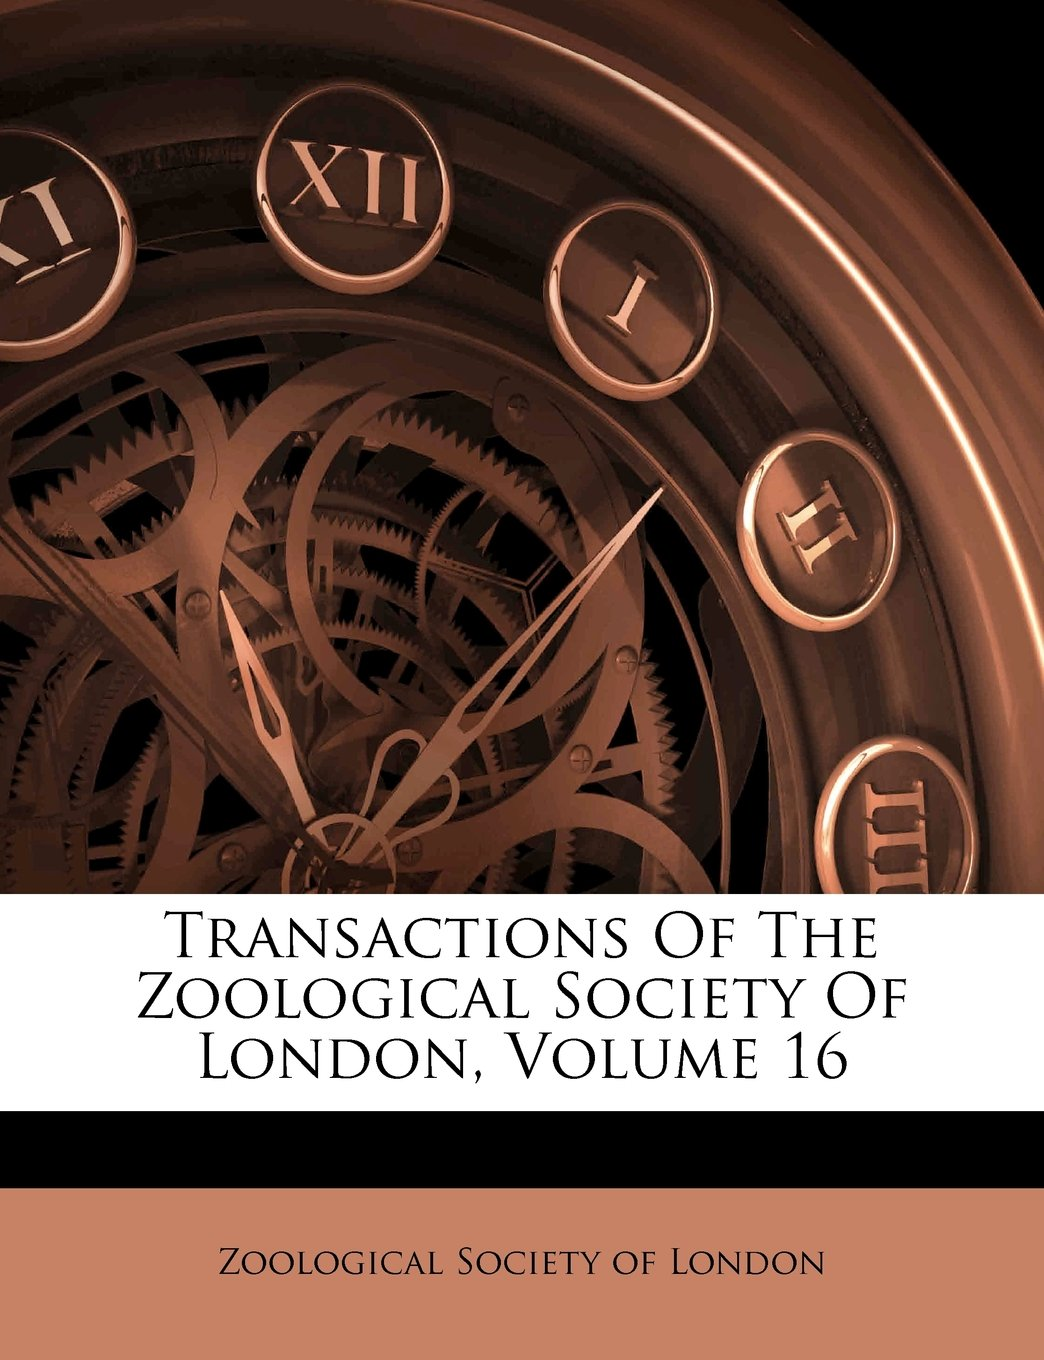 Download Transactions Of The Zoological Society Of London, Volume 16 PDF ePub book